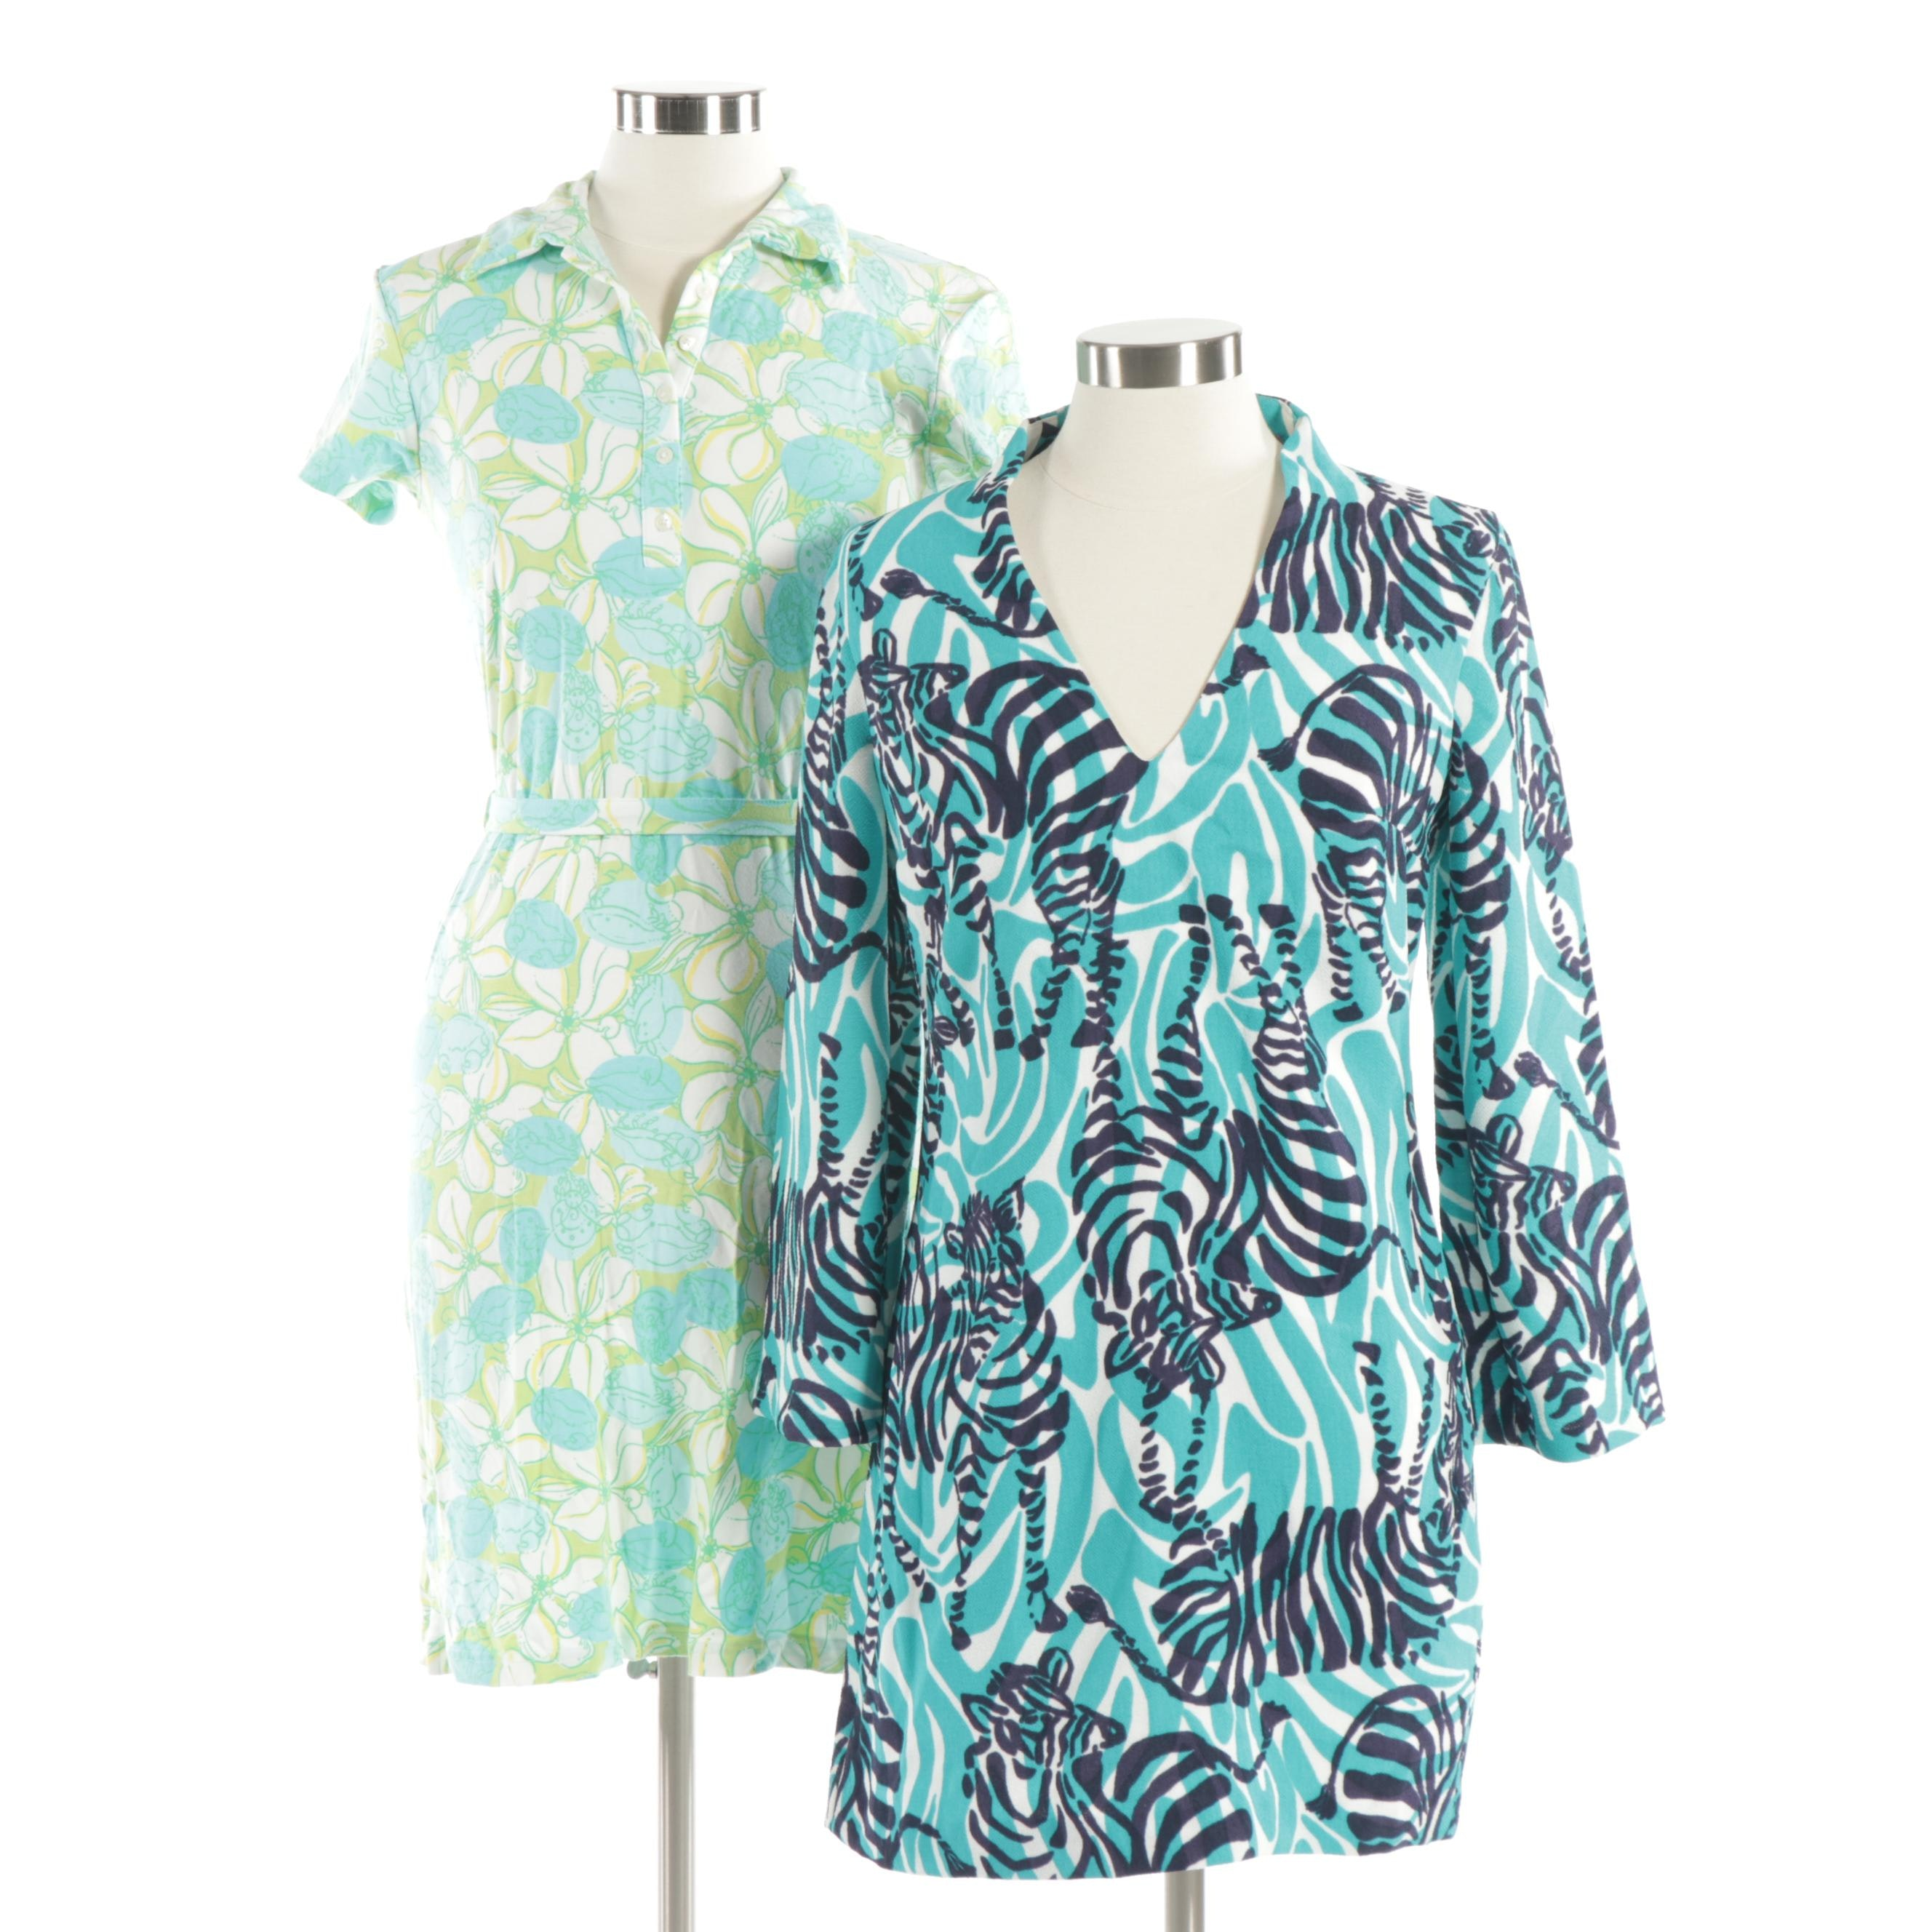 Two Lilly Pulitzer Dresses from the 1990's